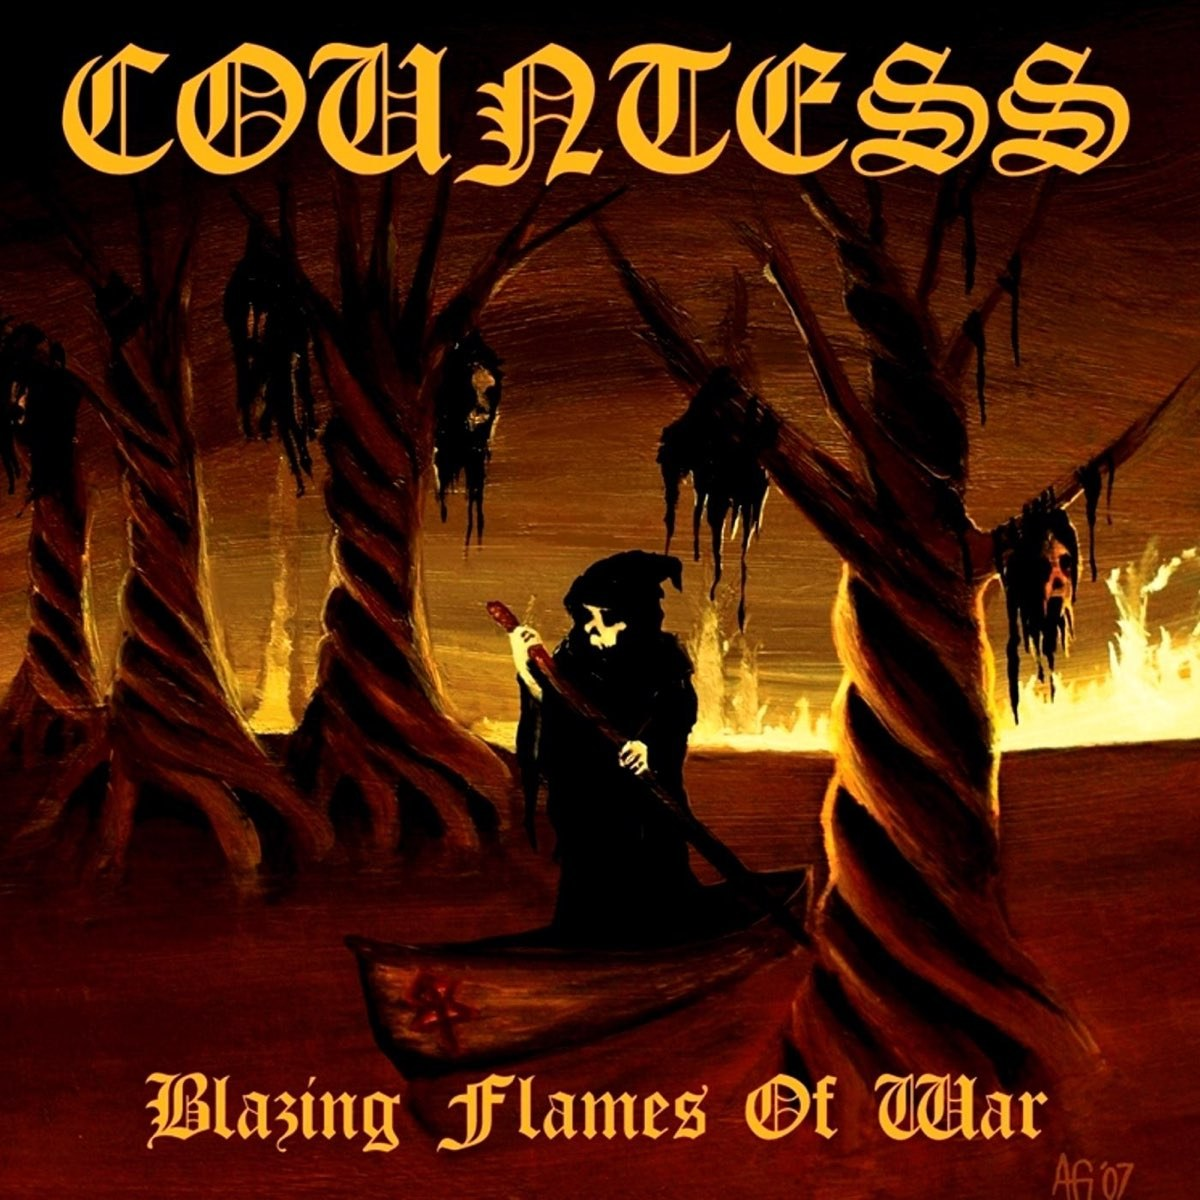 Review for Countess (NLD) - Blazing Flames of War